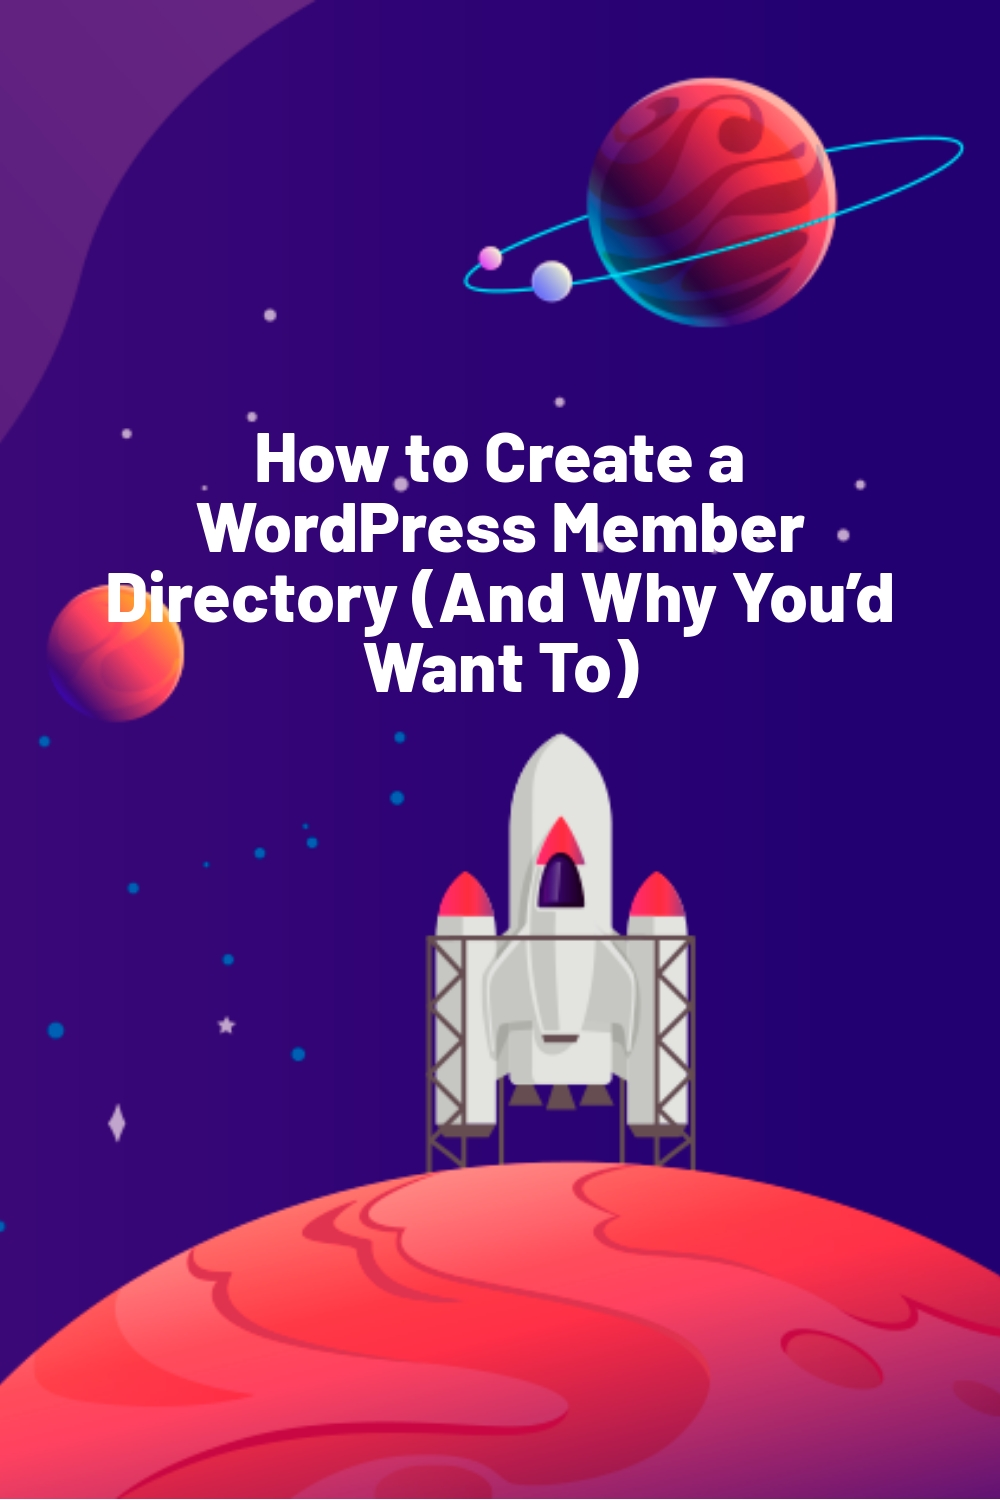 How to Create a WordPress Member Directory (And Why You'd Want To)